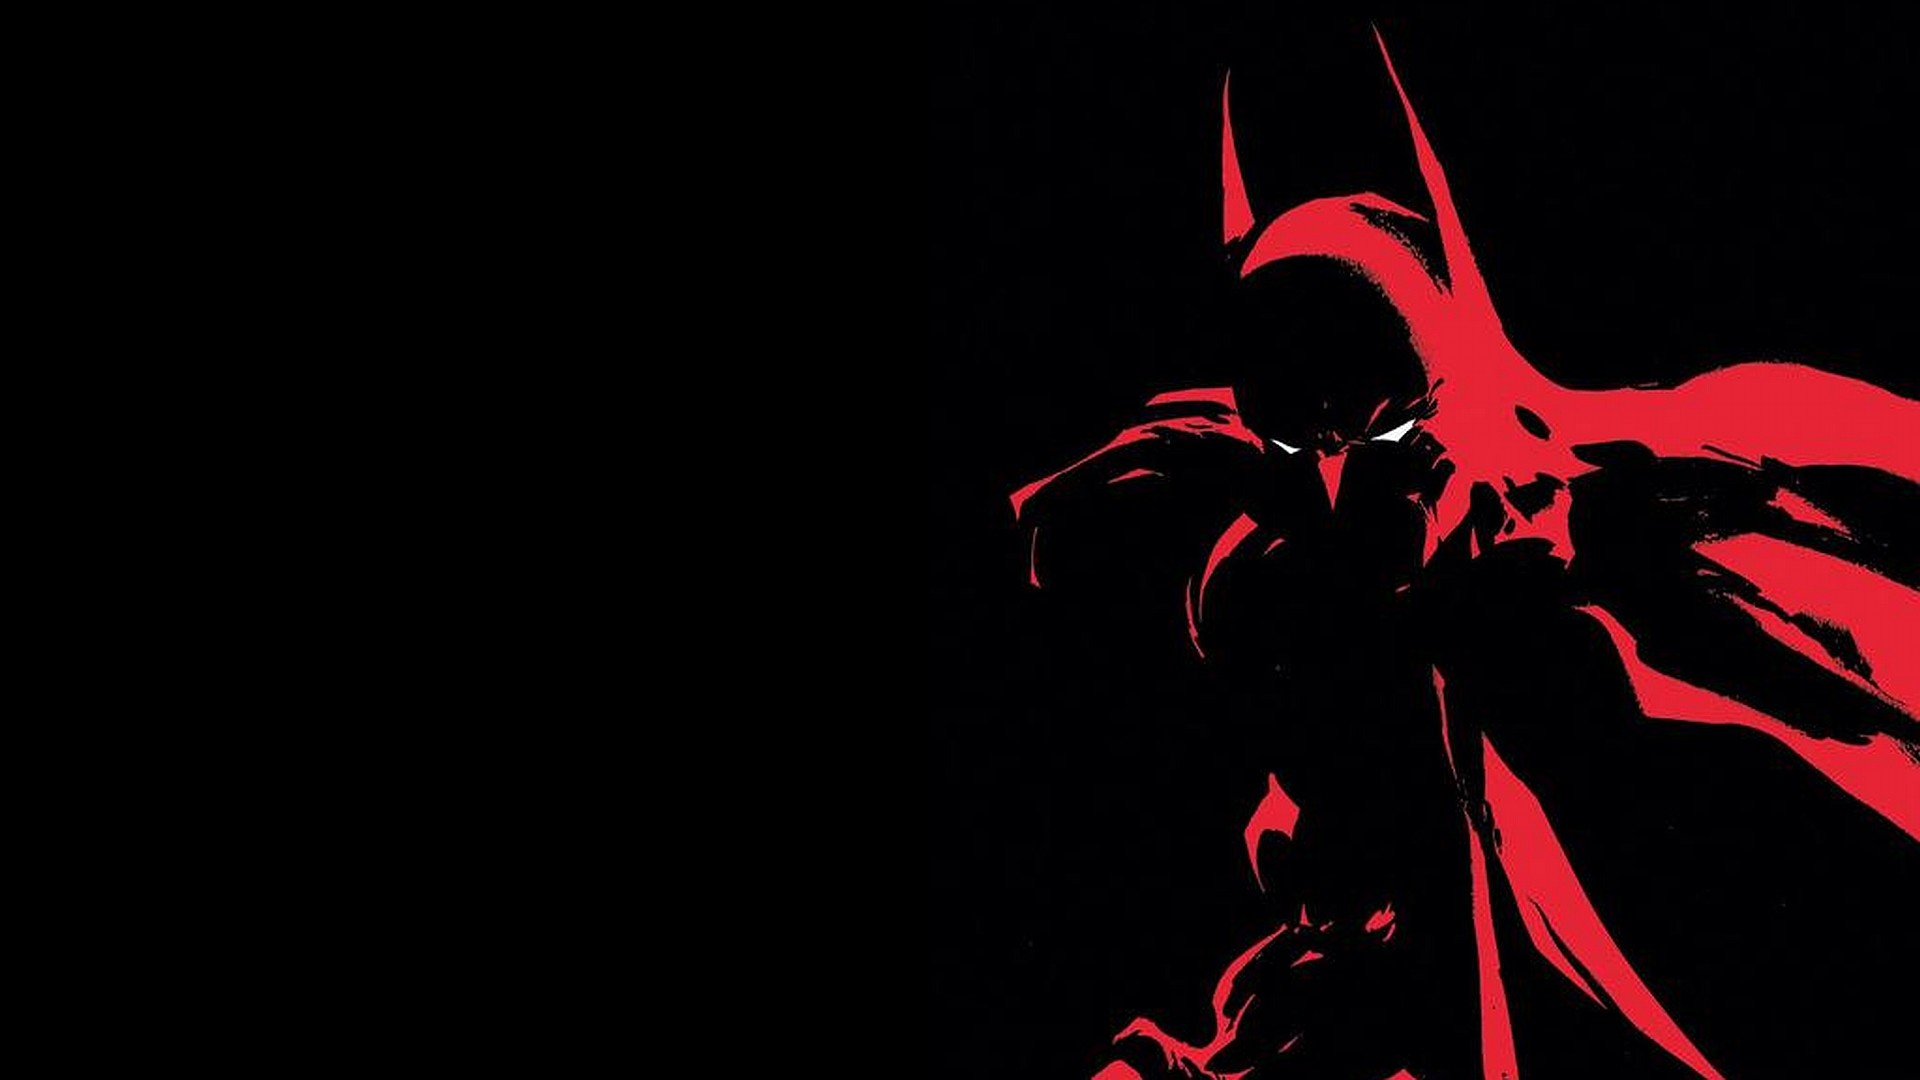 … batman in red and black wallpaper background 18751 …